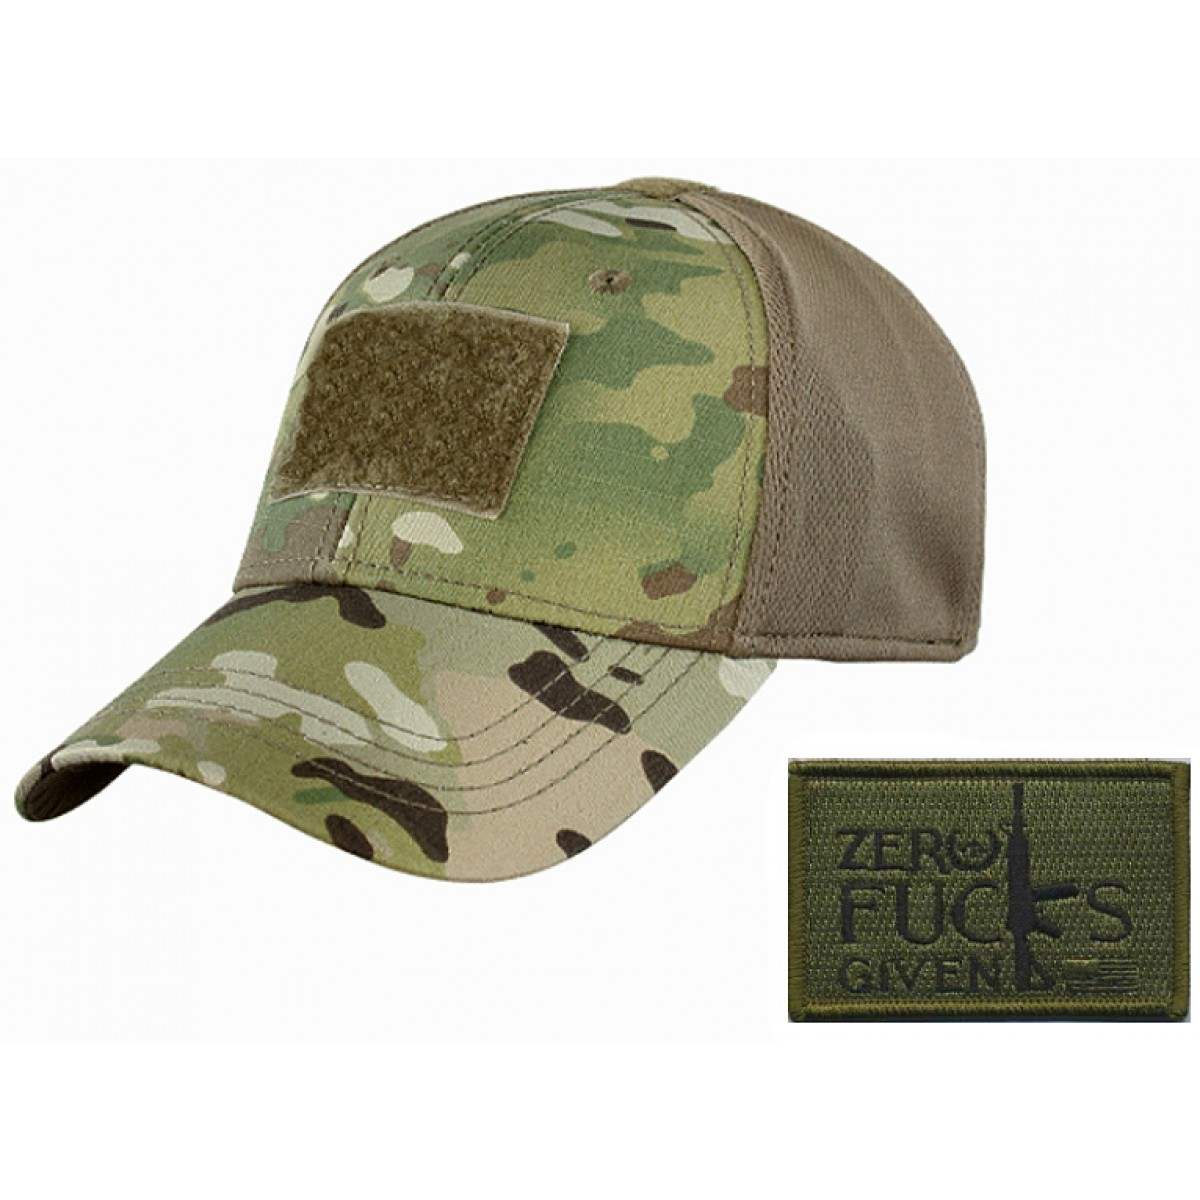 Sav-Tac MultiCam Hat   Patch - American Reaper Apparel ccd760e5b68